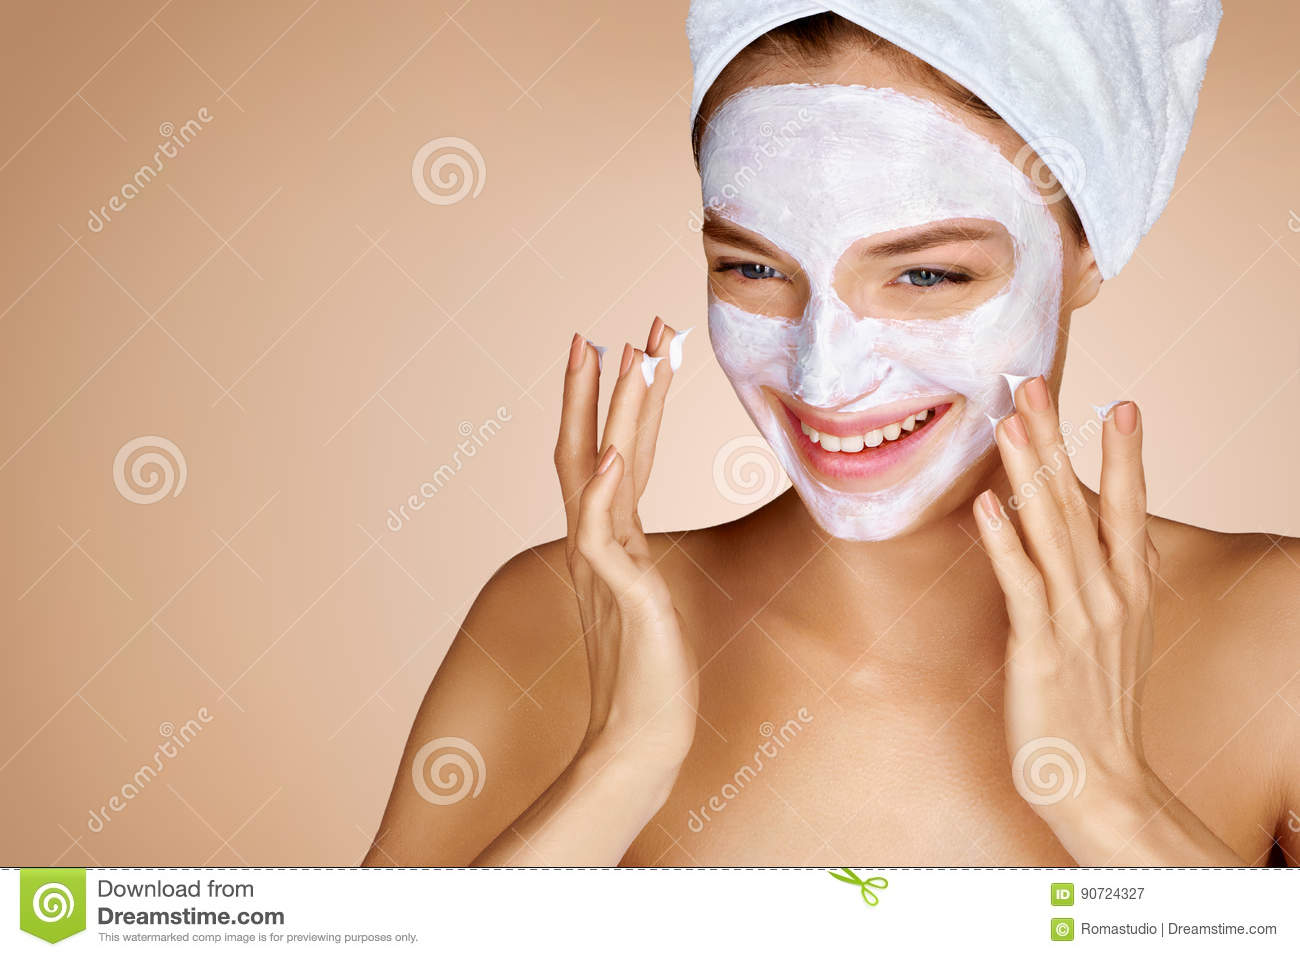 Smiling young girl with cosmetic mask on her face